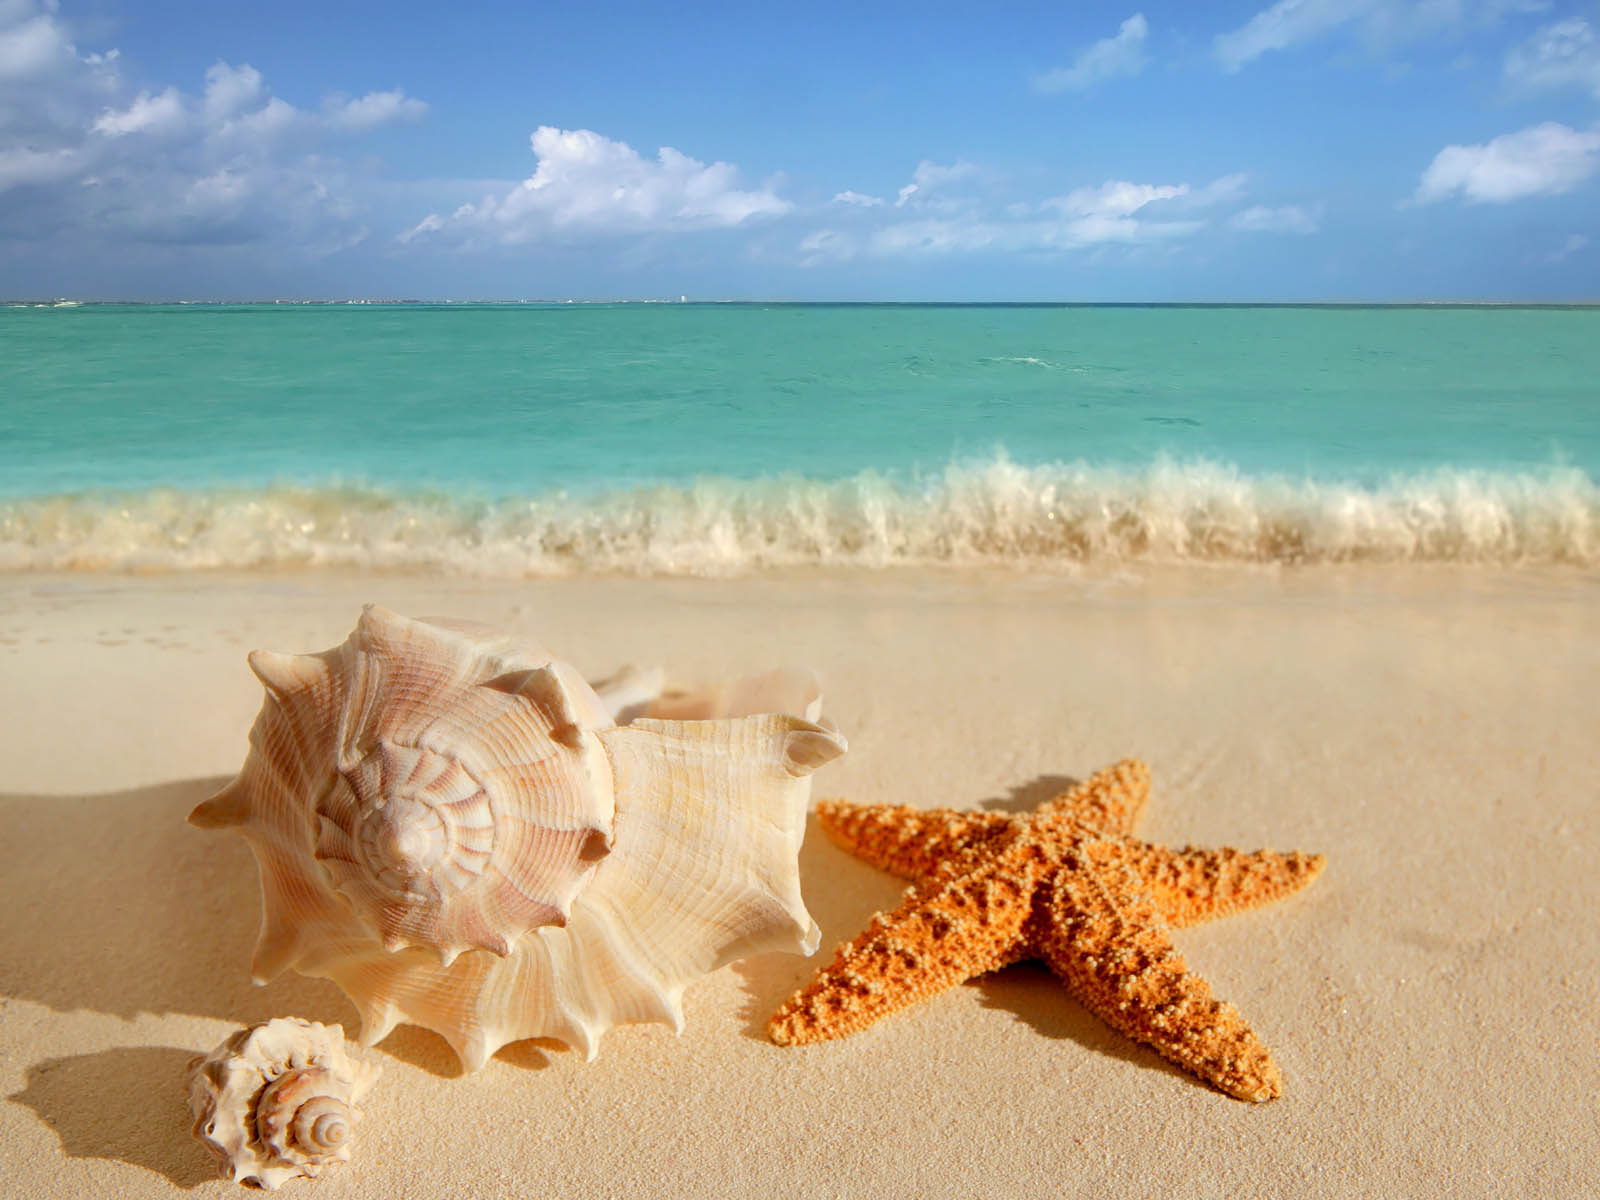 Wallpapers starfish wallpapers for How to fish from the beach